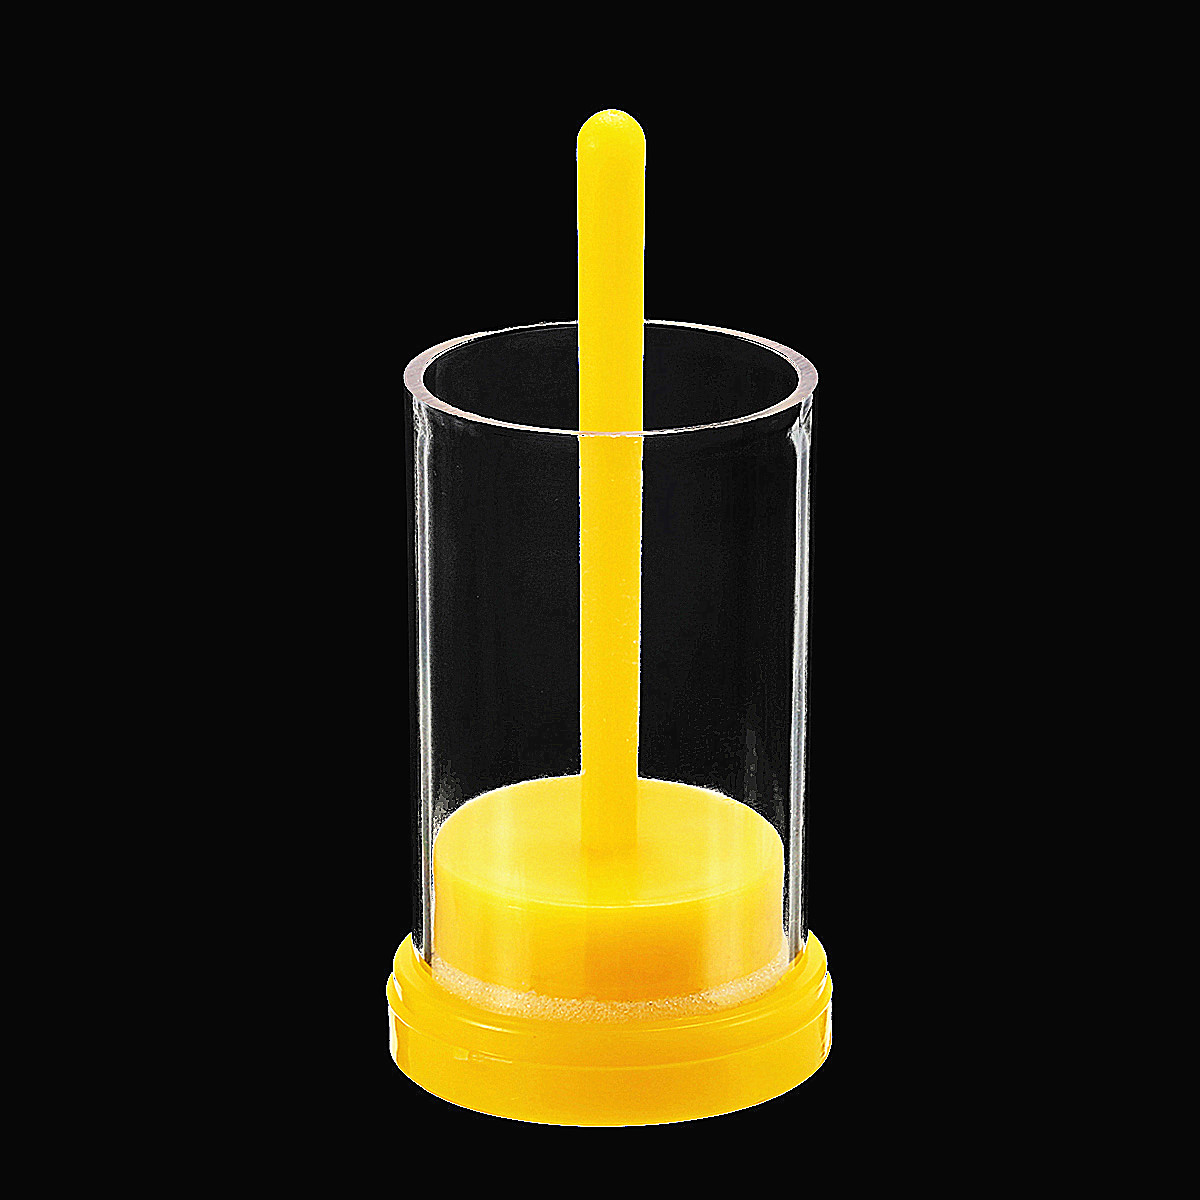 Bee Marking Cage Plastic Bee Marking Bottle Queen Bee Marking Cage Marker Bottle w Plunger Beekeeping Equipment in Beekeeping Tools from Home Garden